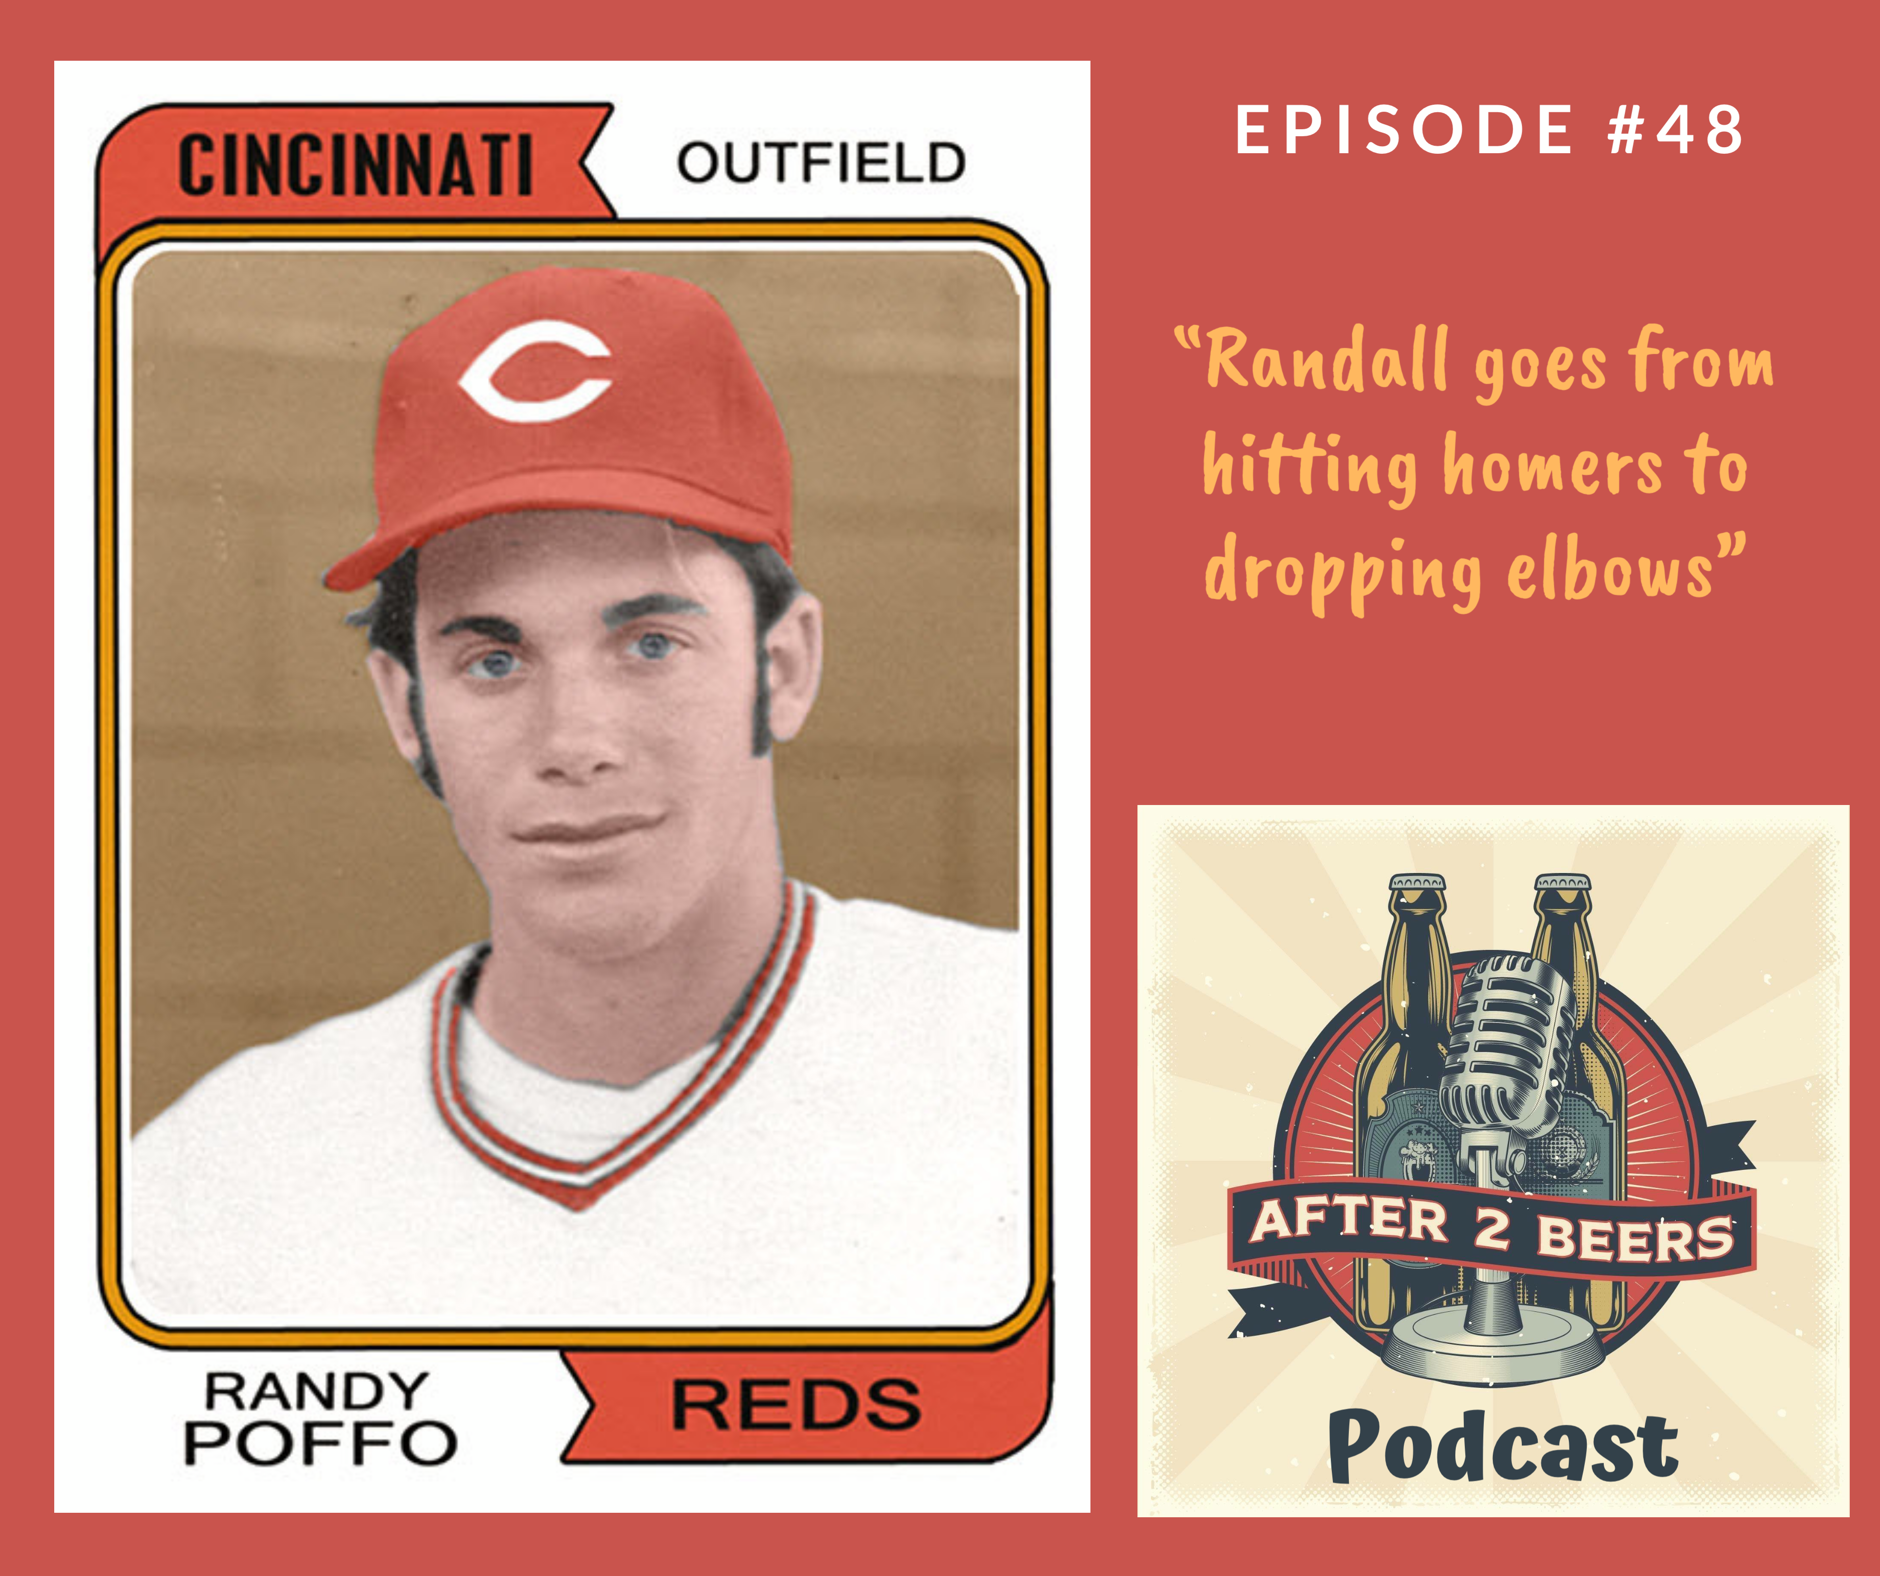 Episode #48 - In our A2B History Segment, Randall goes from hitting homers to dropping elbows.